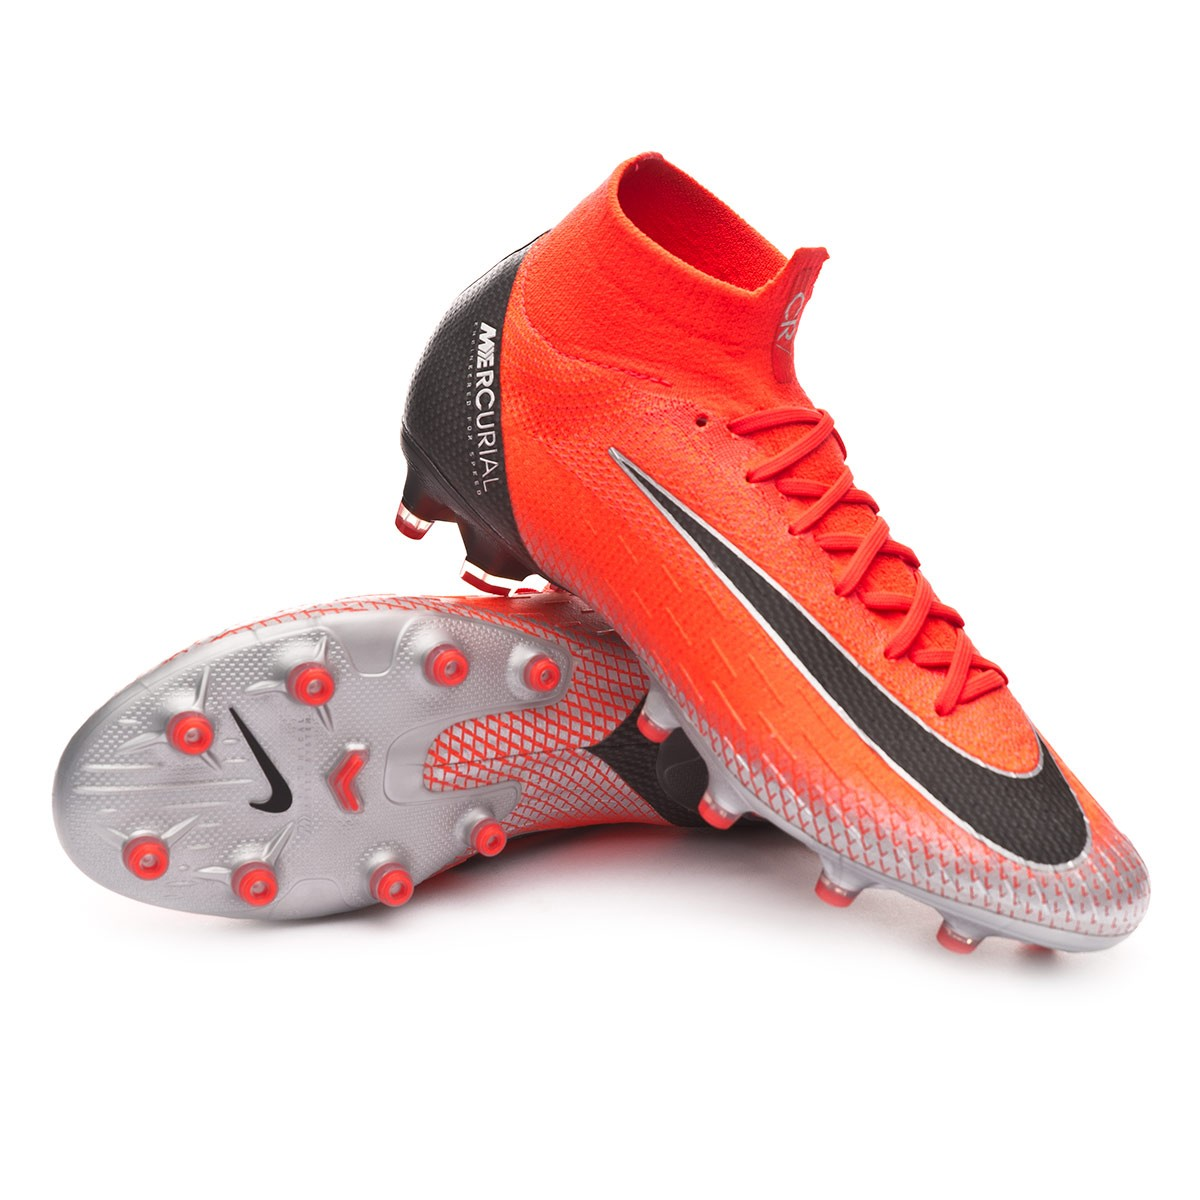 025088dc7f1 Football Boots Nike Mercurial Superfly VI Elite CR7 AG-Pro Flash  crimson-Black-Total crimson - Tienda de fútbol Fútbol Emotion